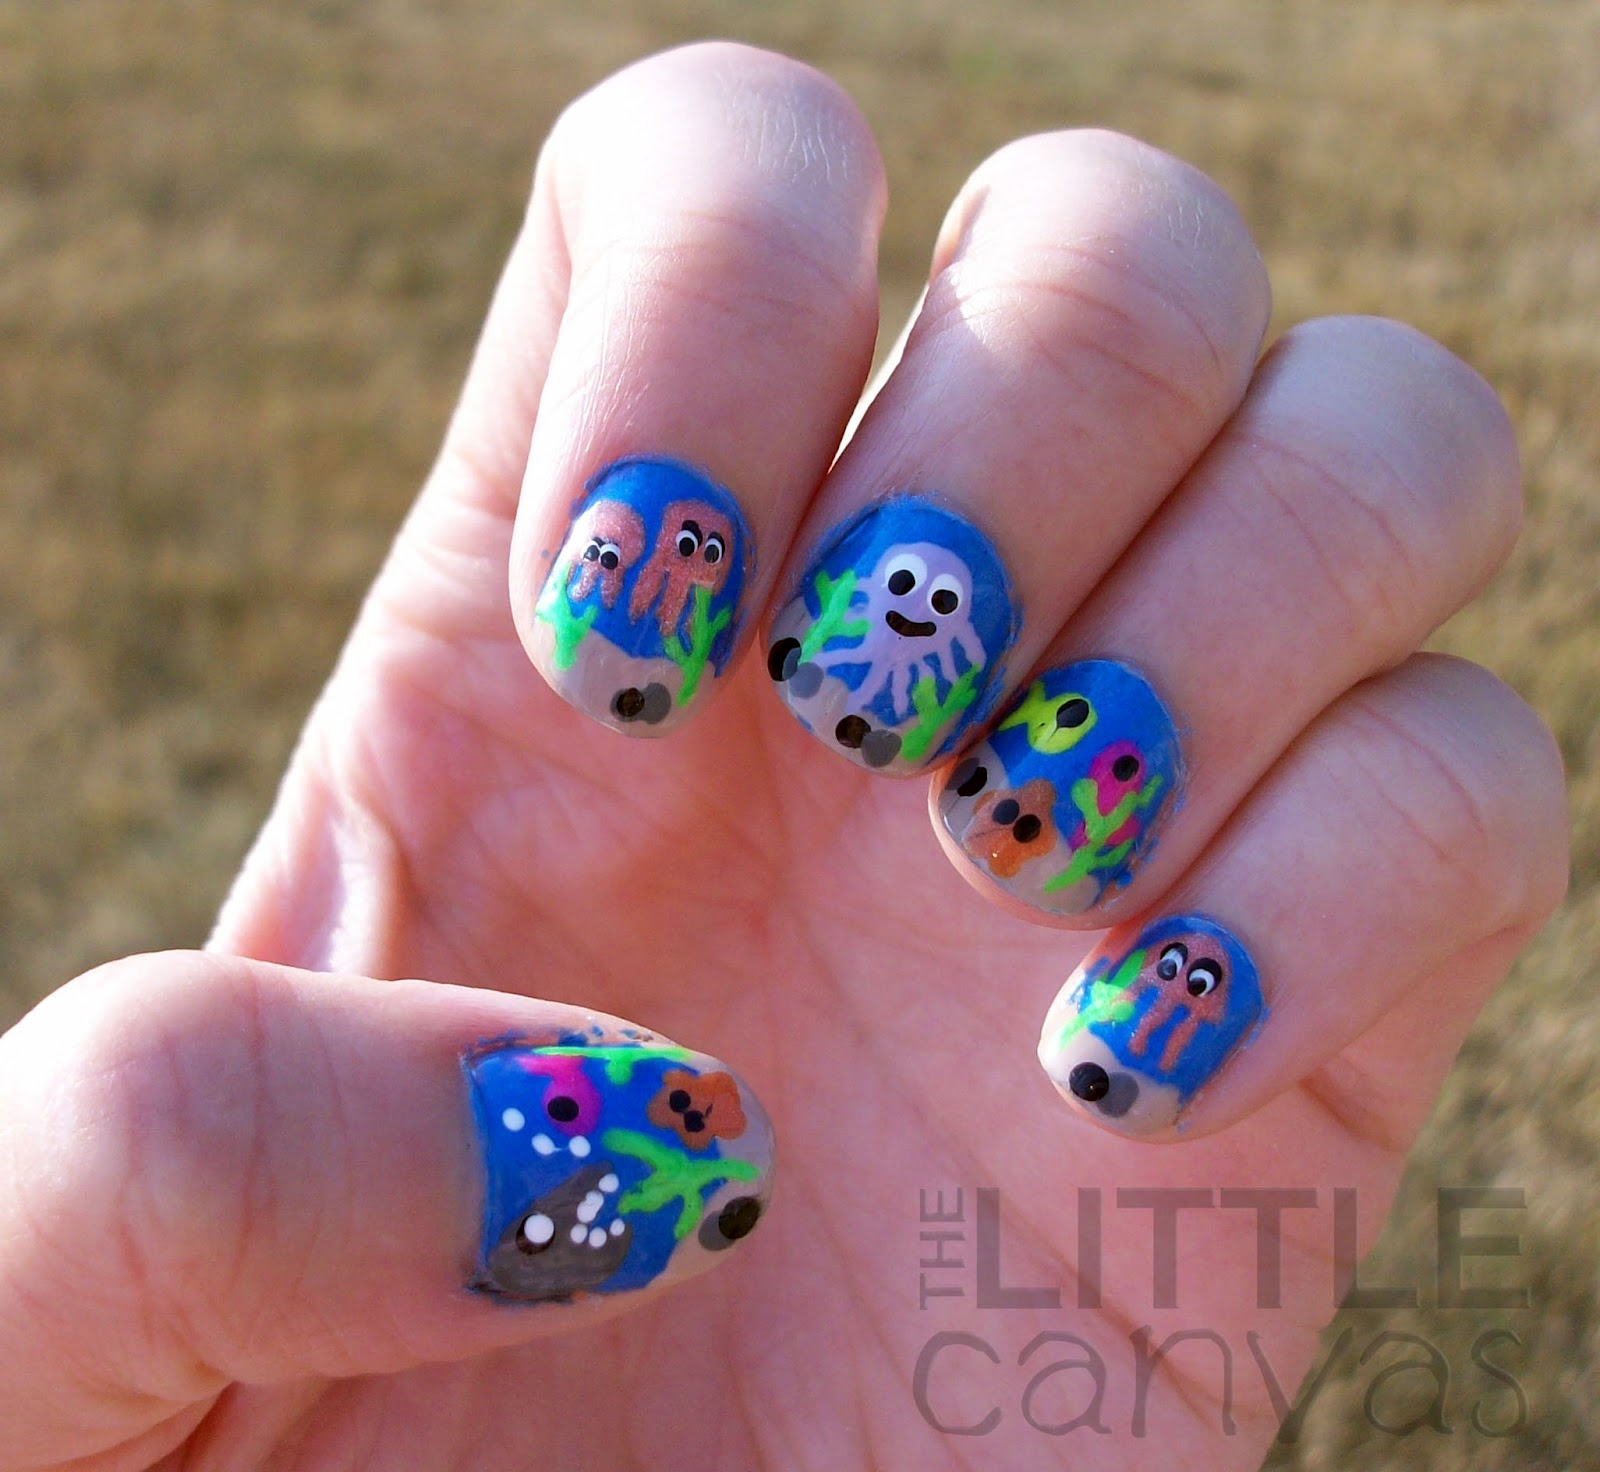 Under the Sea Nail Art - The Little Canvas